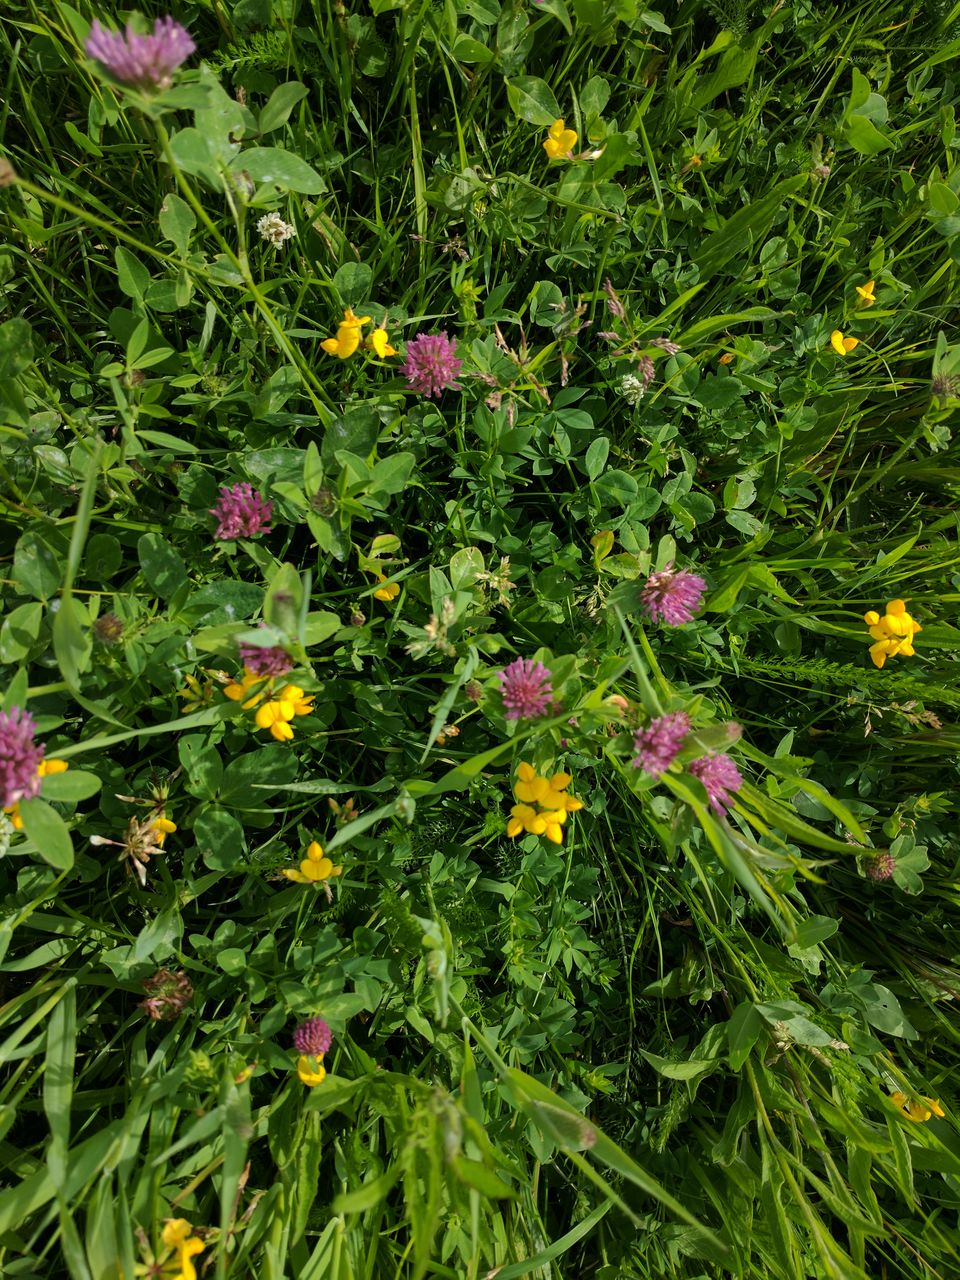 flower, growth, green color, plant, nature, outdoors, leaf, no people, yellow, blooming, beauty in nature, freshness, fragility, day